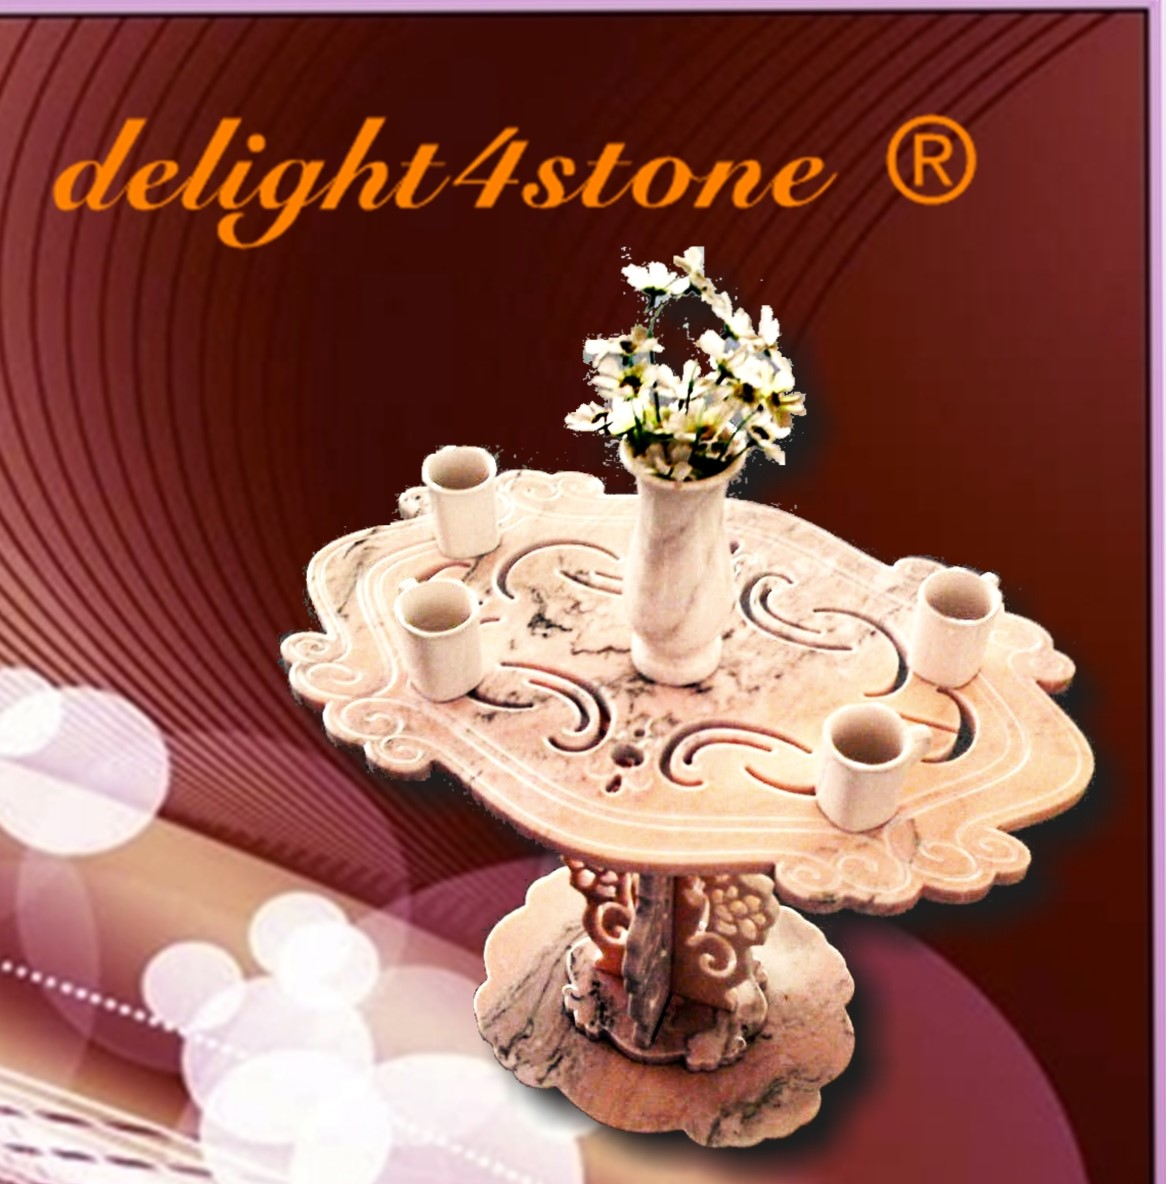 Firma delight4stone. Descriere si informatii de contact.